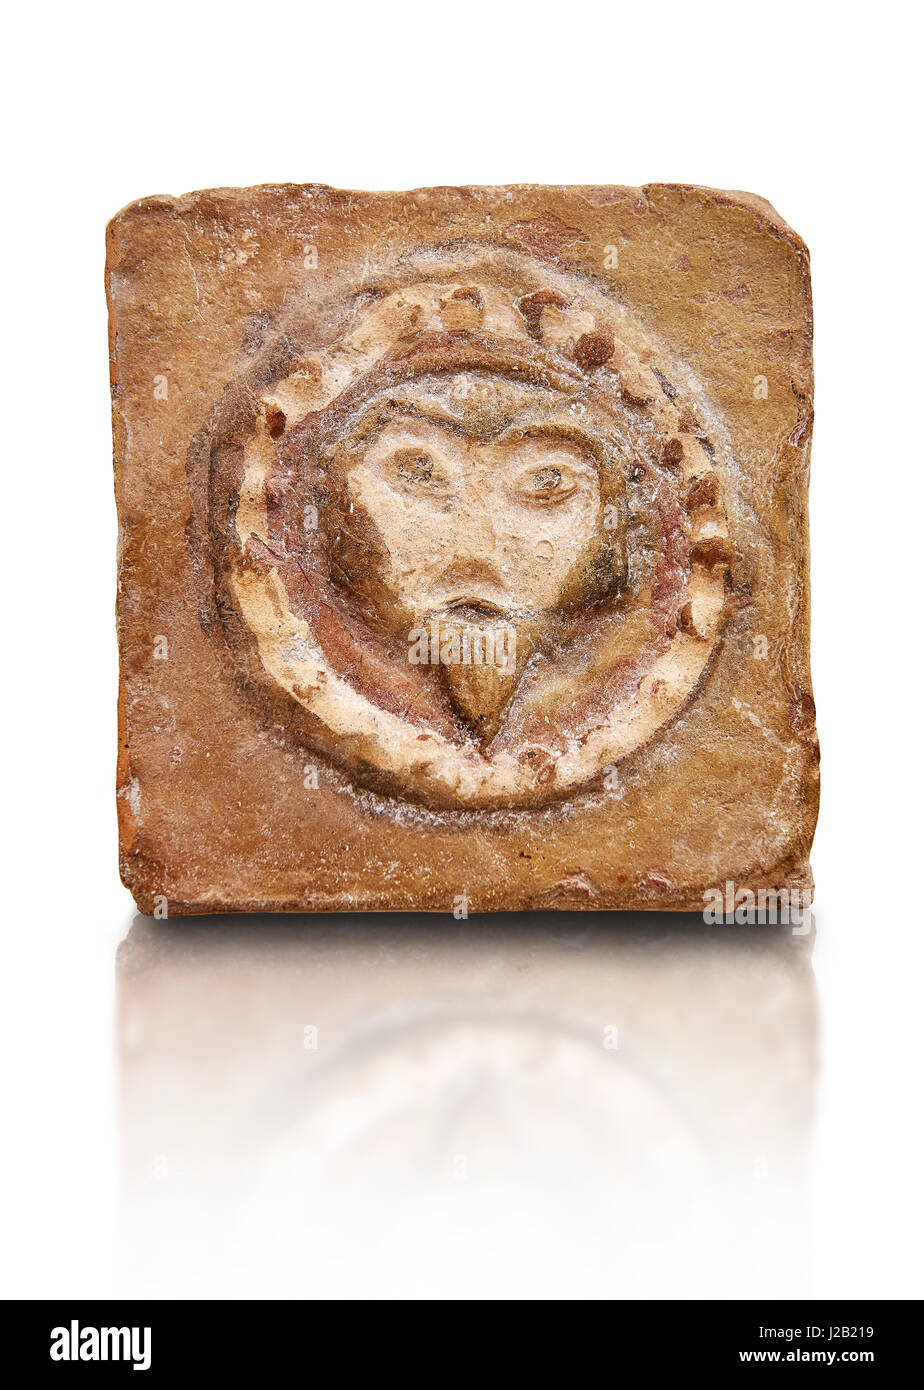 6th-7th Century Byzantine Christian Terracotta tiles depicting Christ - Produced in Byzacena -  The Bardo Museum - Stock Image